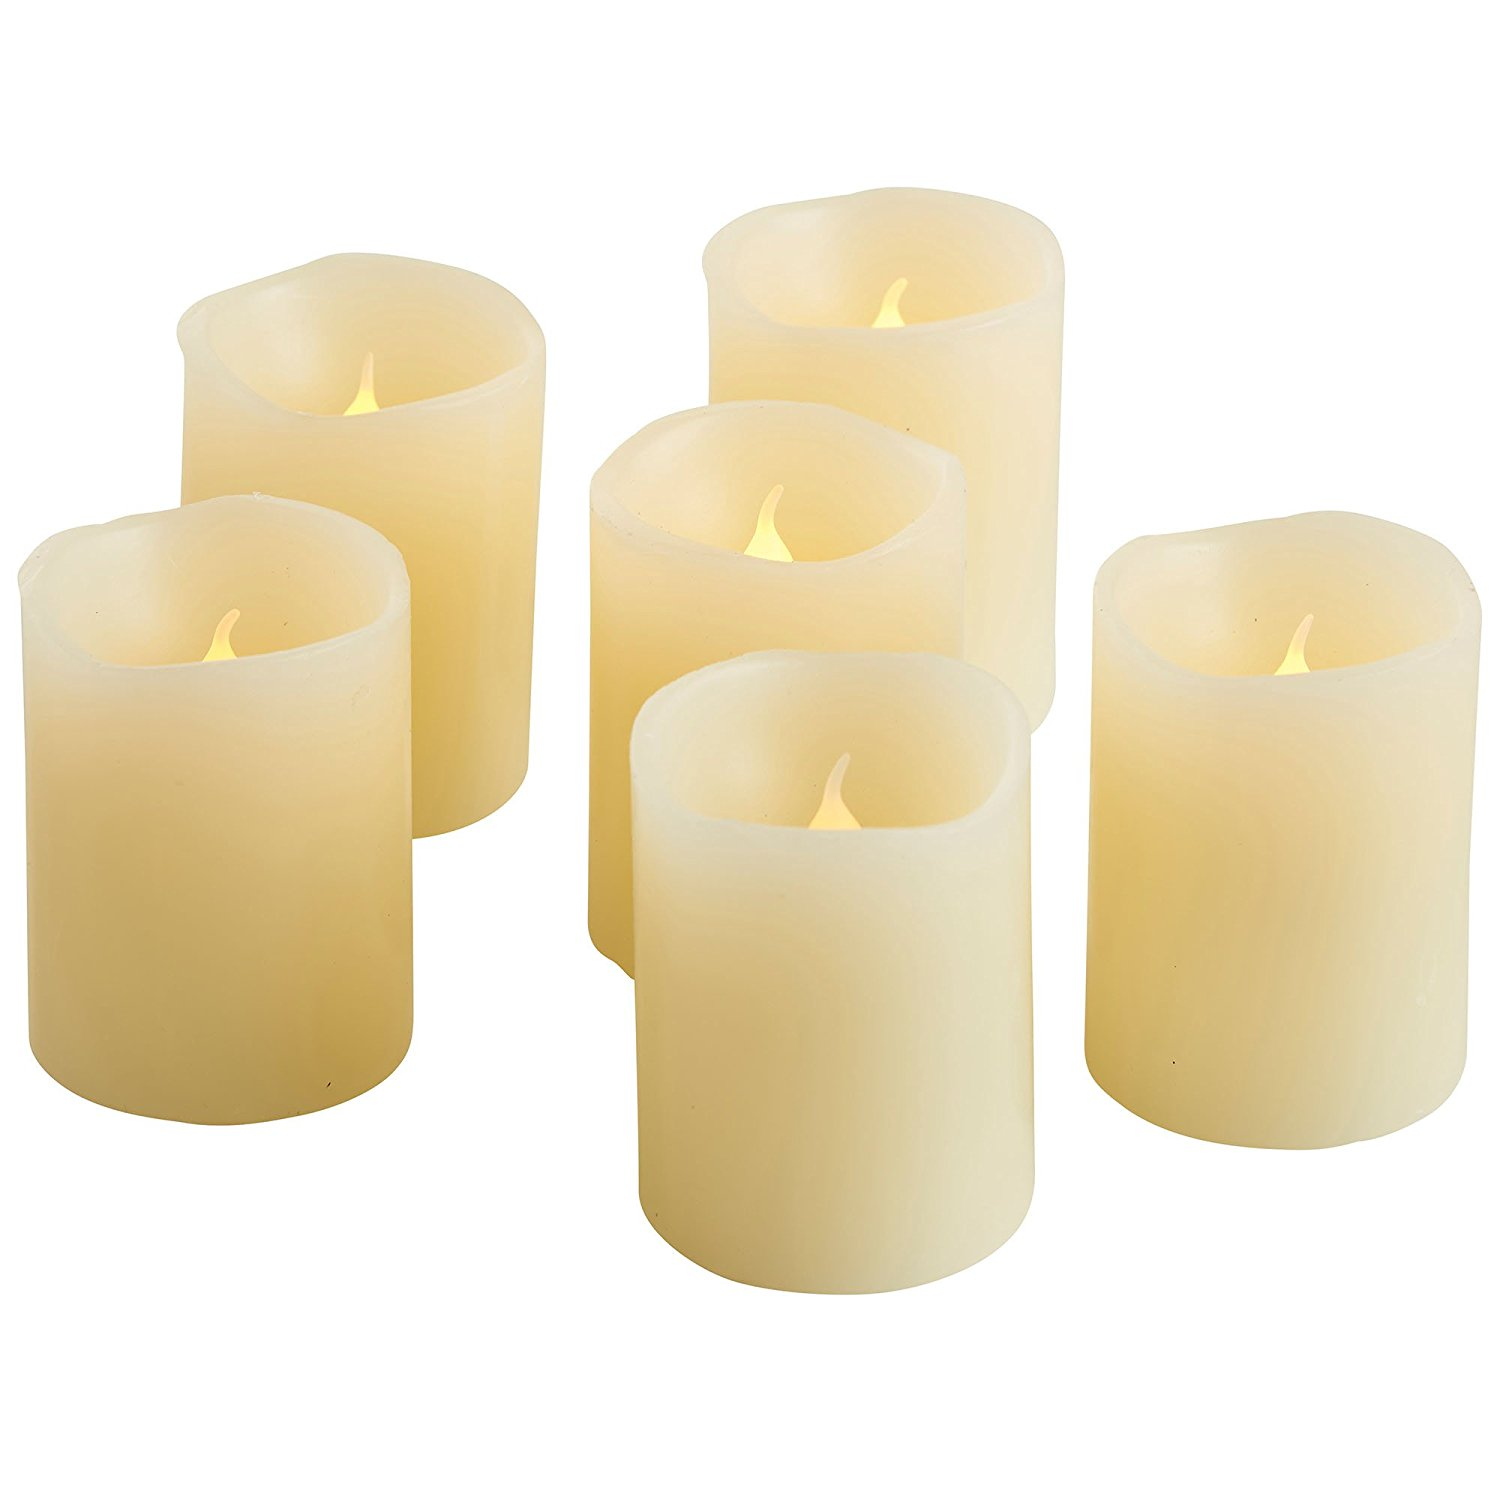 Amazon.com: VonHaus 6 x Blow Out LED Flameless Candles - Real Wax ...